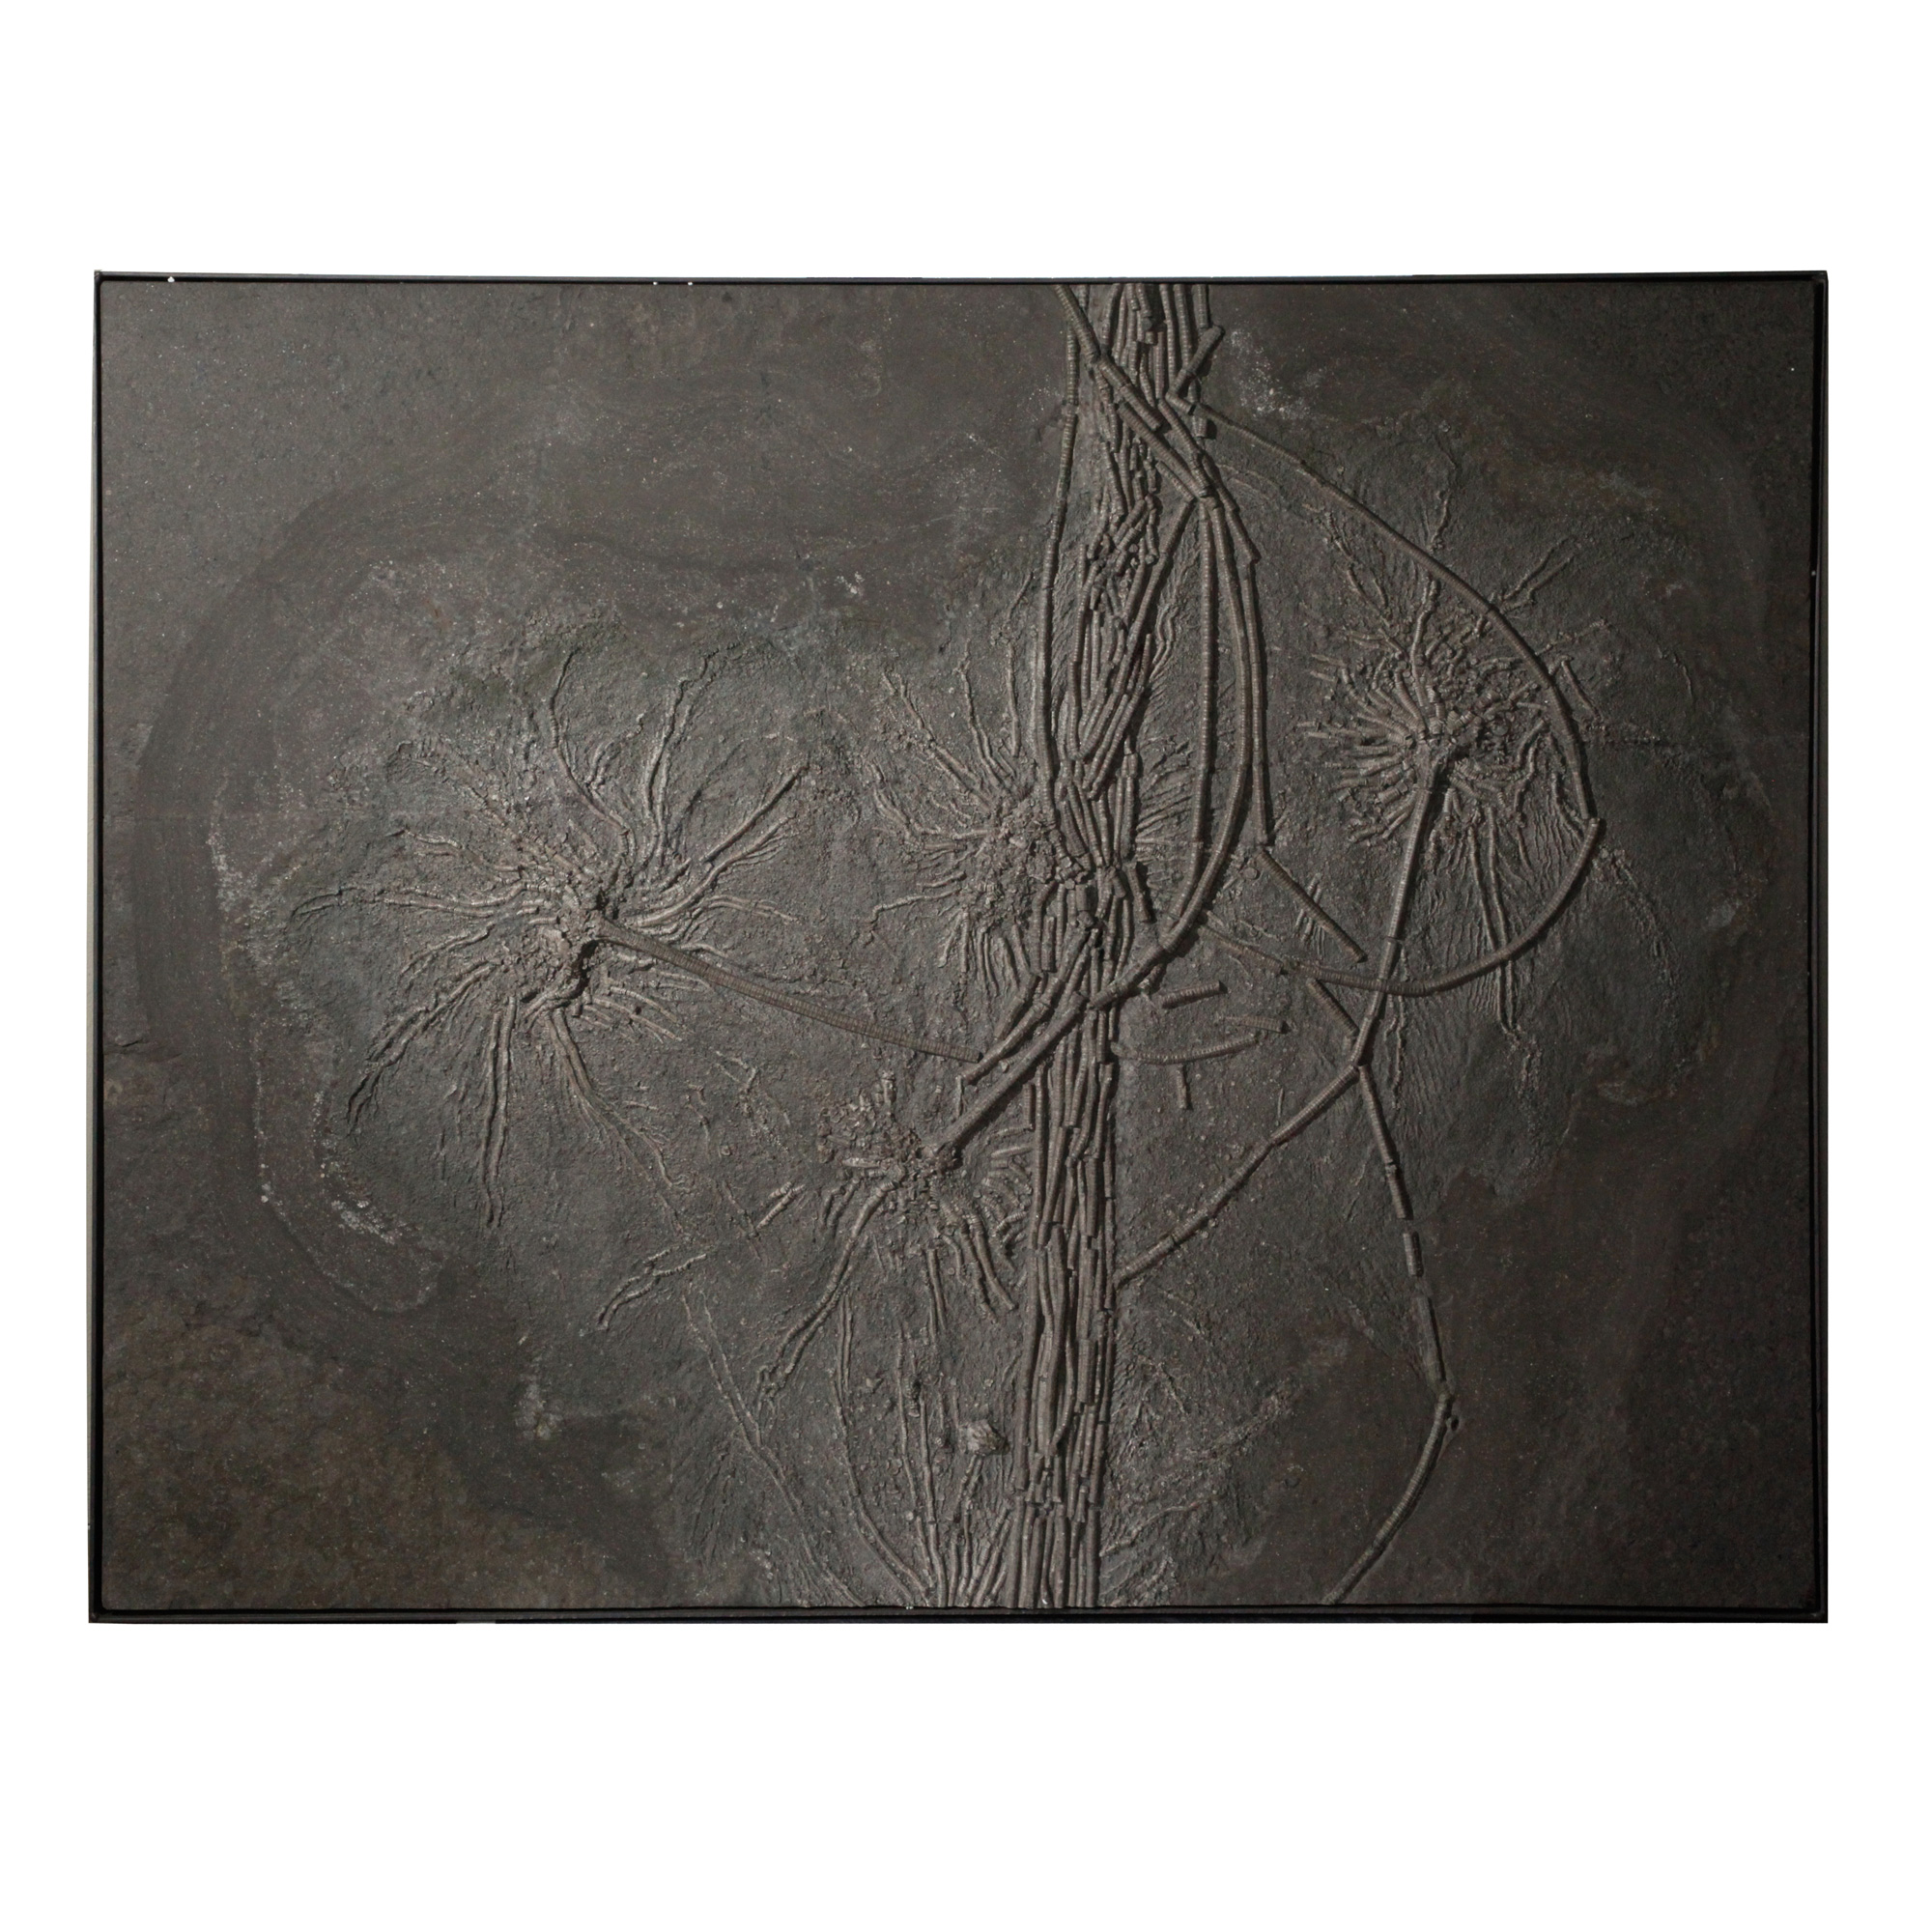 Fossil Crinoid Plate